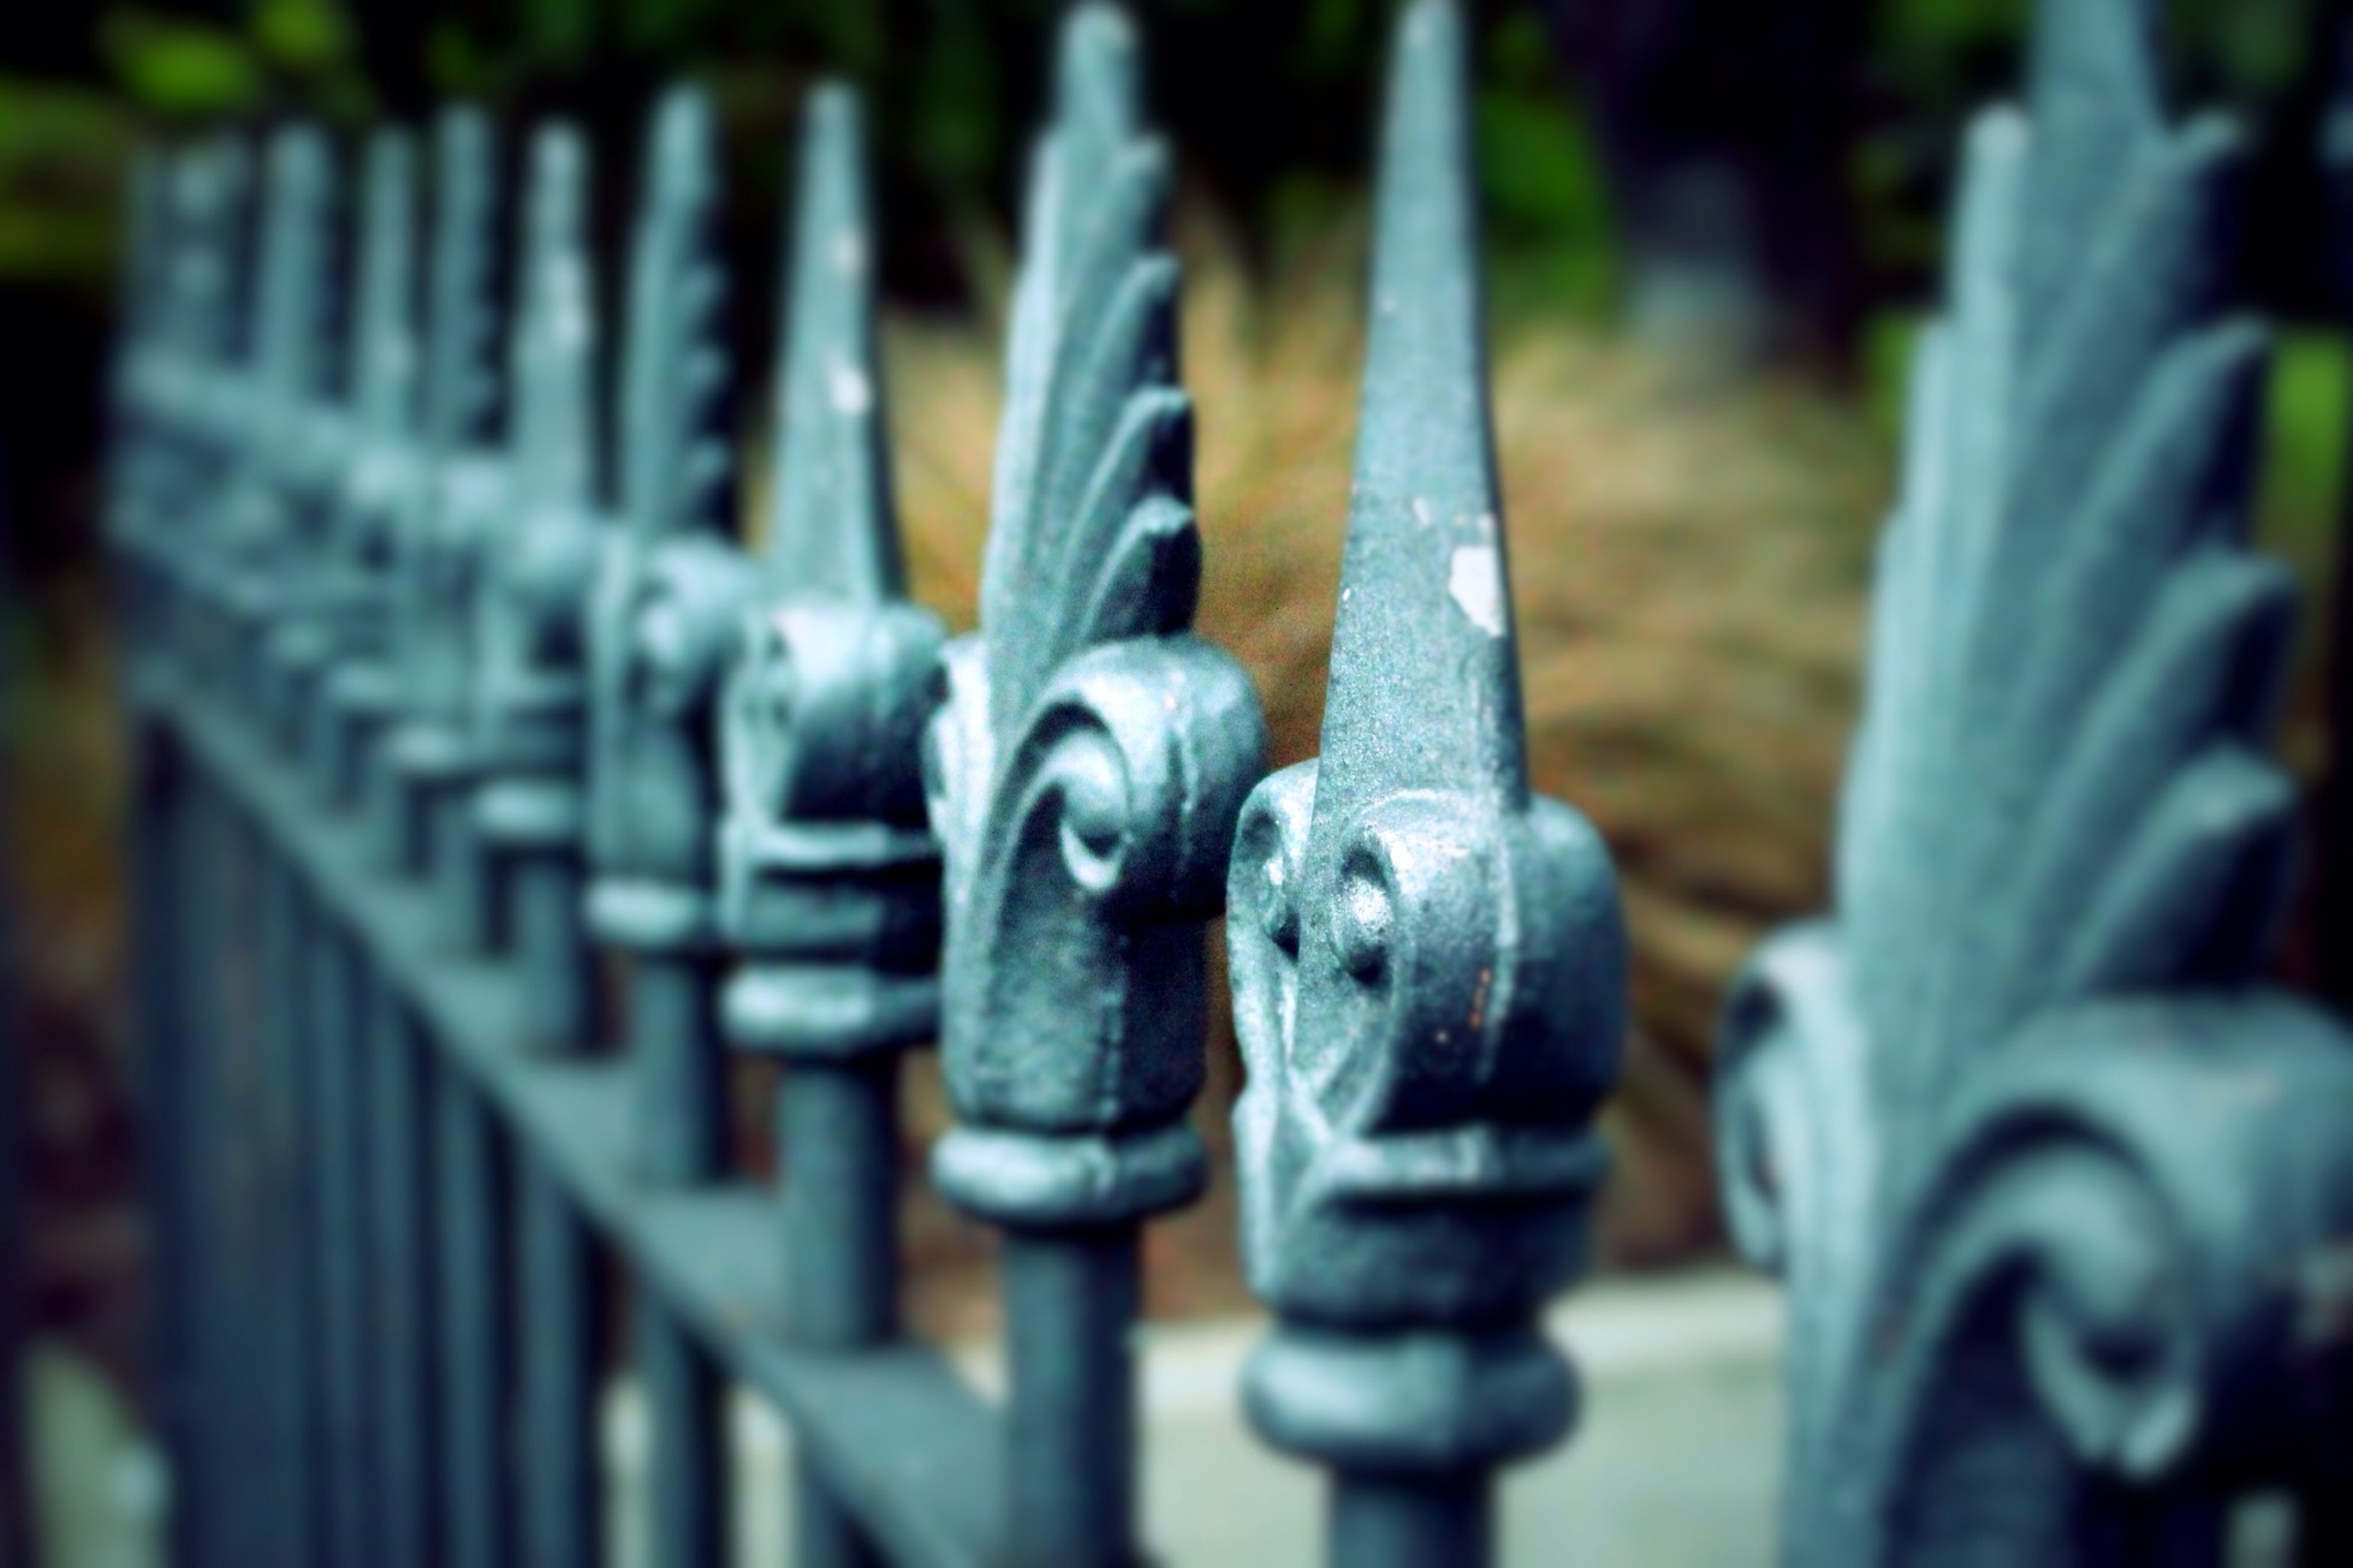 metal, focus on foreground, metallic, close-up, selective focus, padlock, security, rusty, protection, safety, lock, in a row, old, chain, fence, machine part, day, no people, outdoors, iron - metal